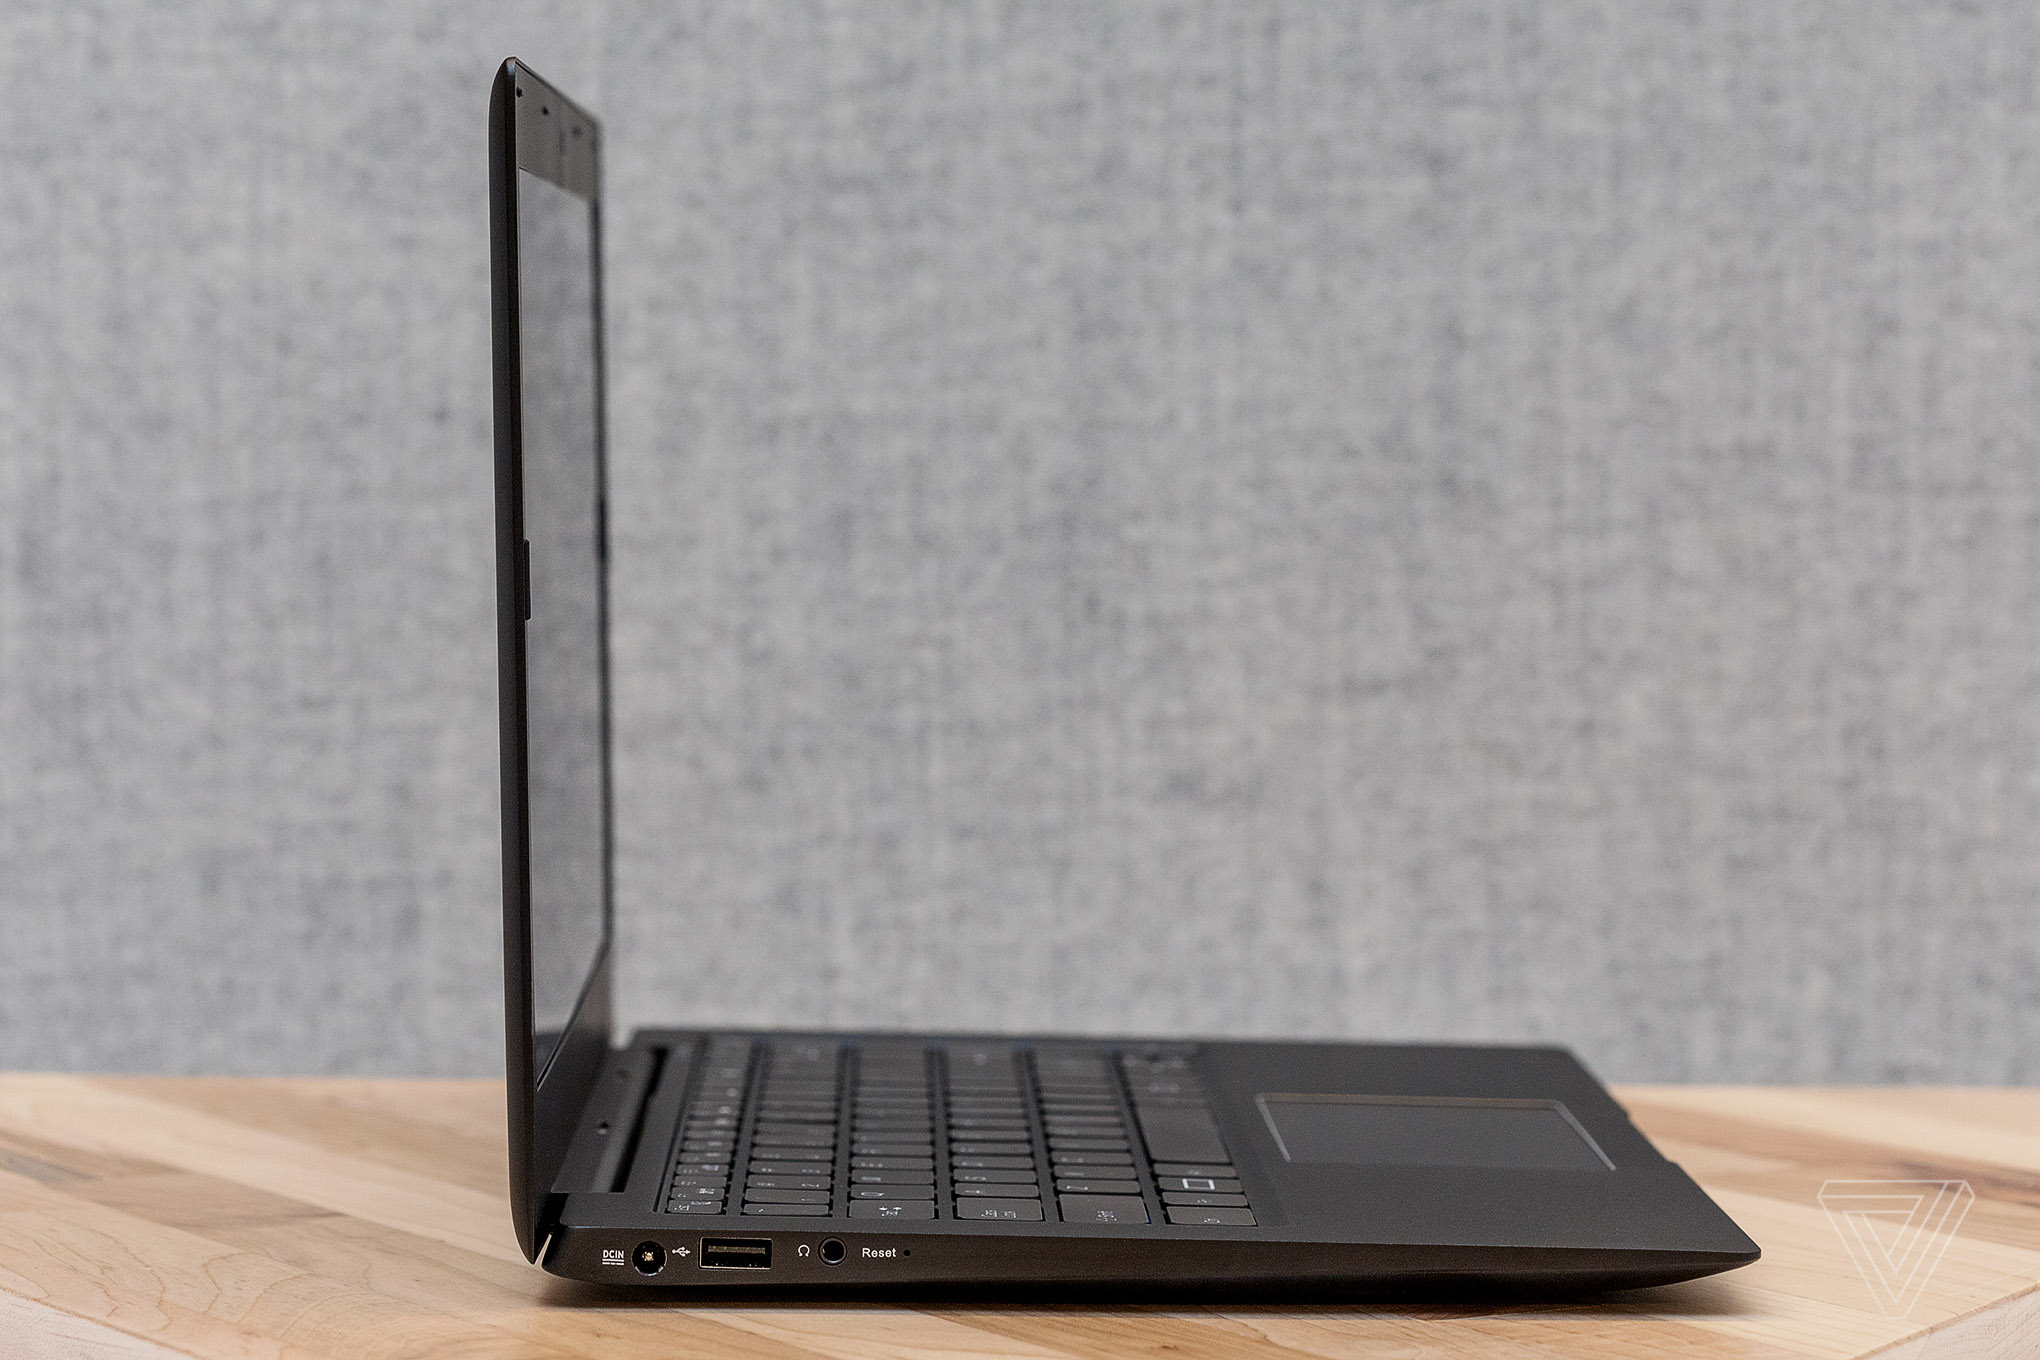 Librem 13 laptop review: physical security for the paranoid